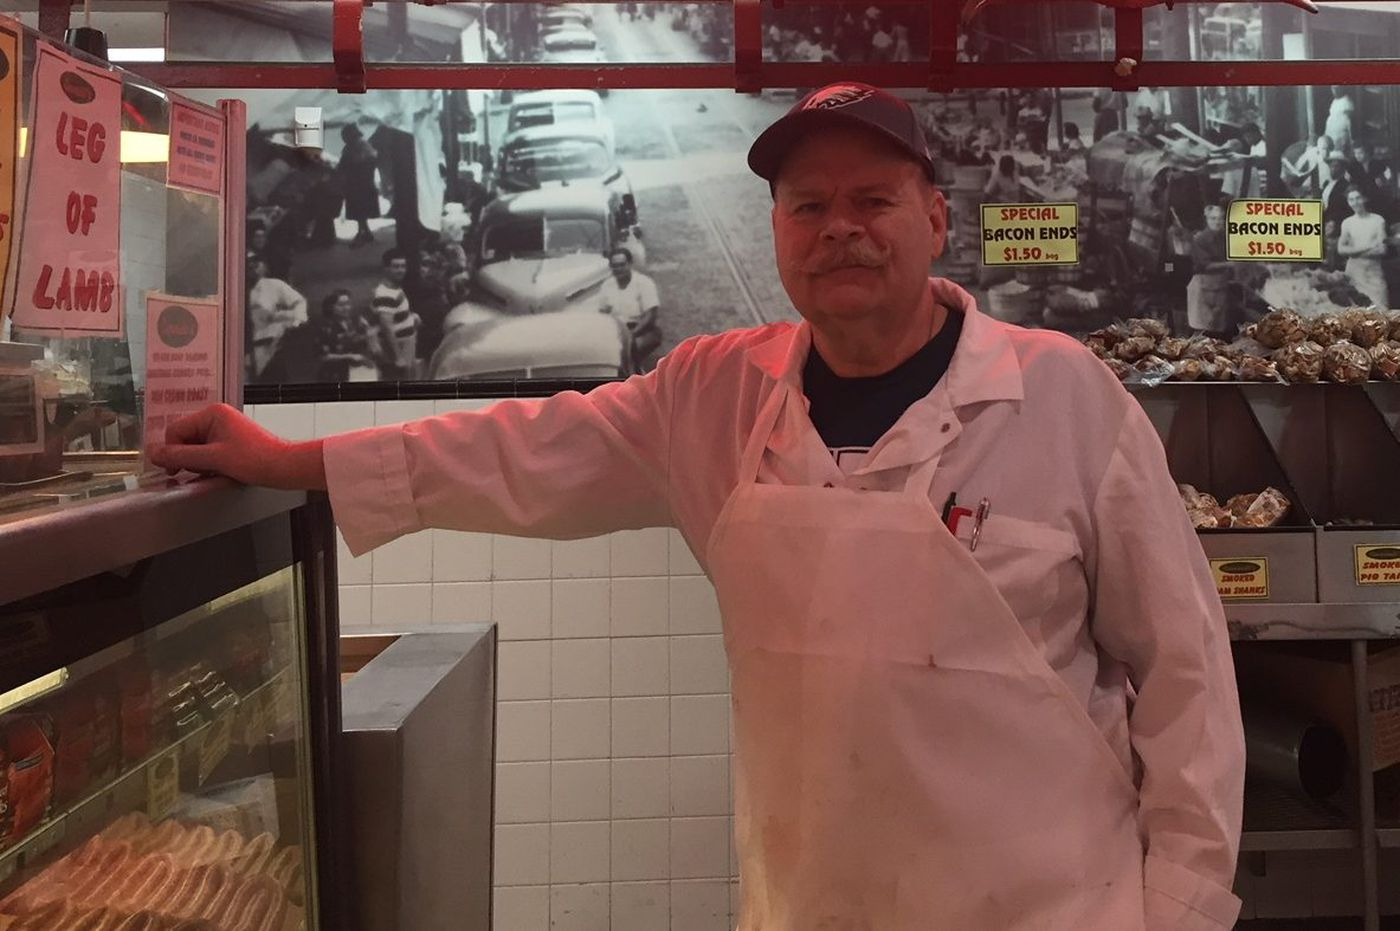 Italian Market butcher has meat-cute story | We the People